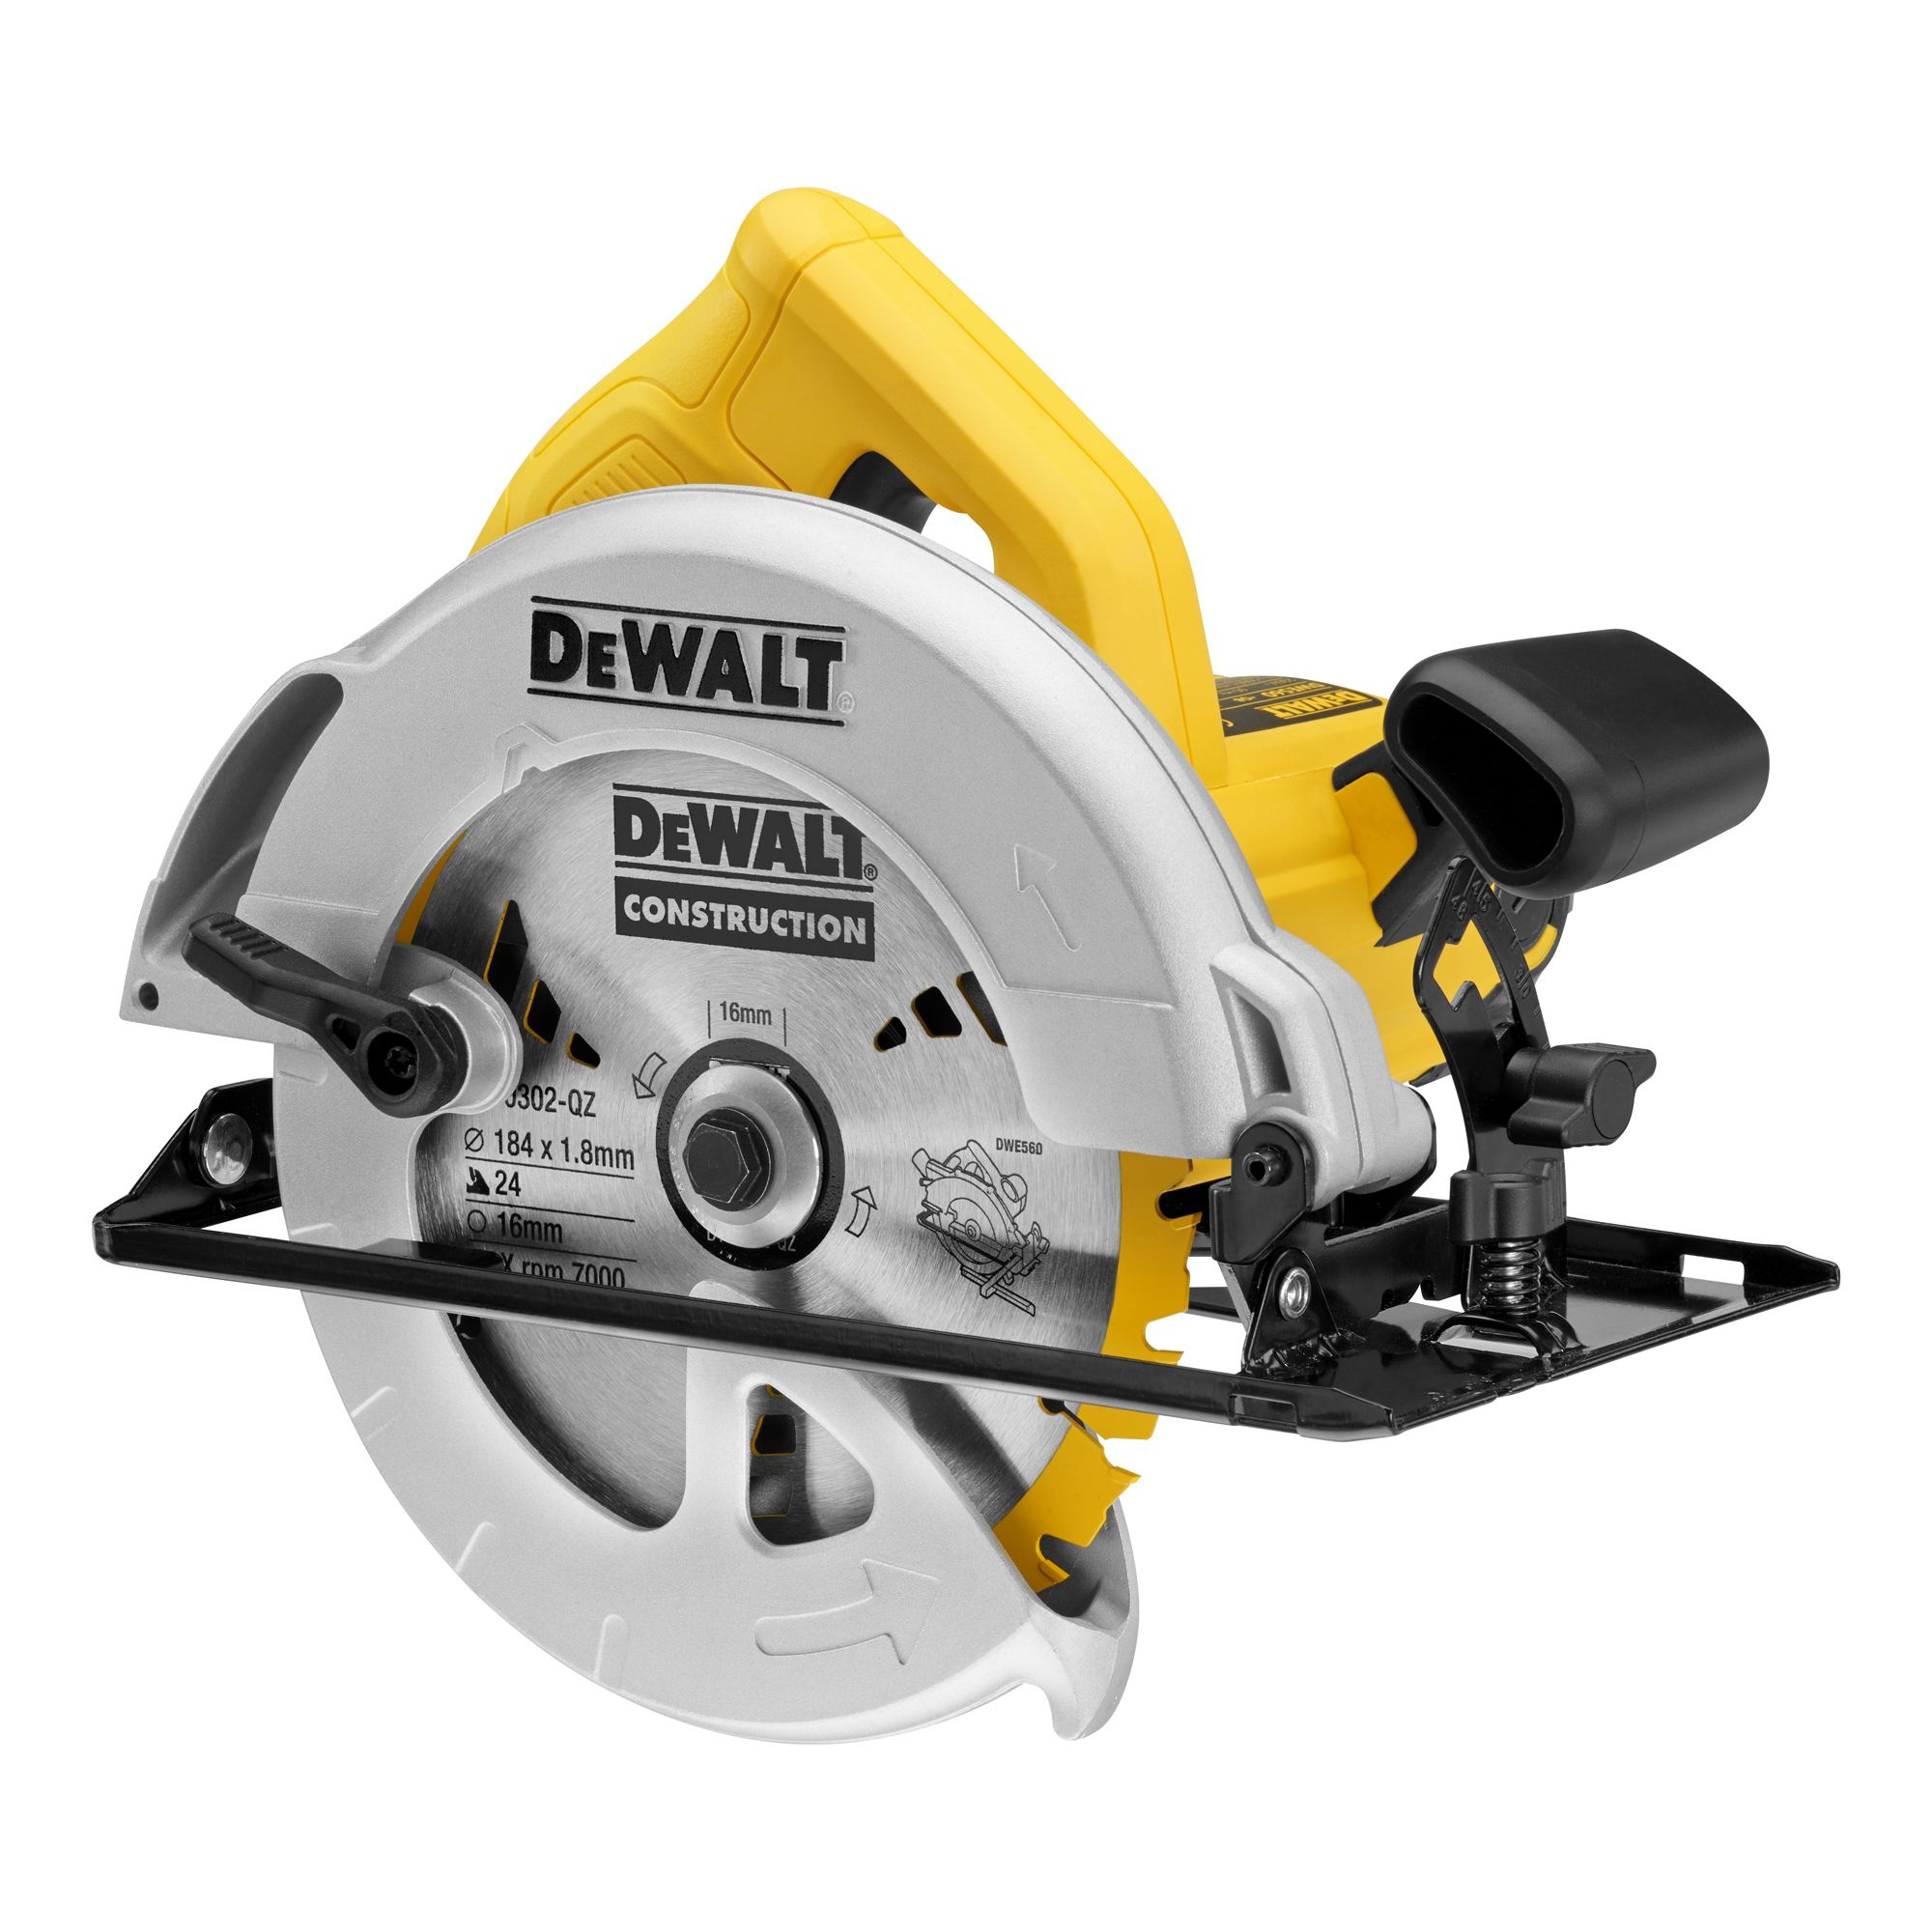 Dewalt 1350w 240v 184mm Circular Saw Dwe560 Gb